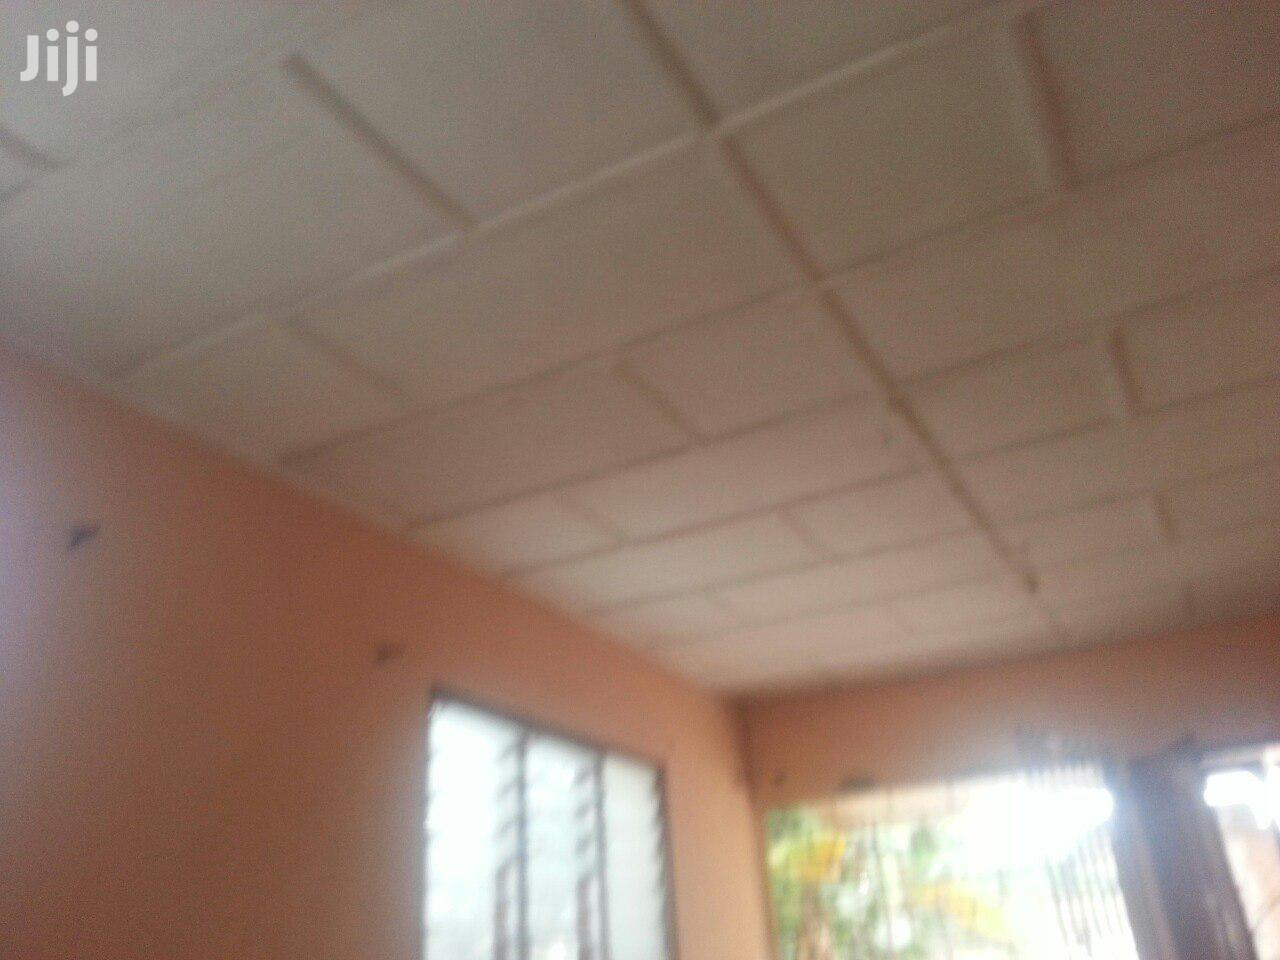 Chamber And Hall Self Contain For Rent | Houses & Apartments For Rent for sale in Kwashieman, Greater Accra, Ghana